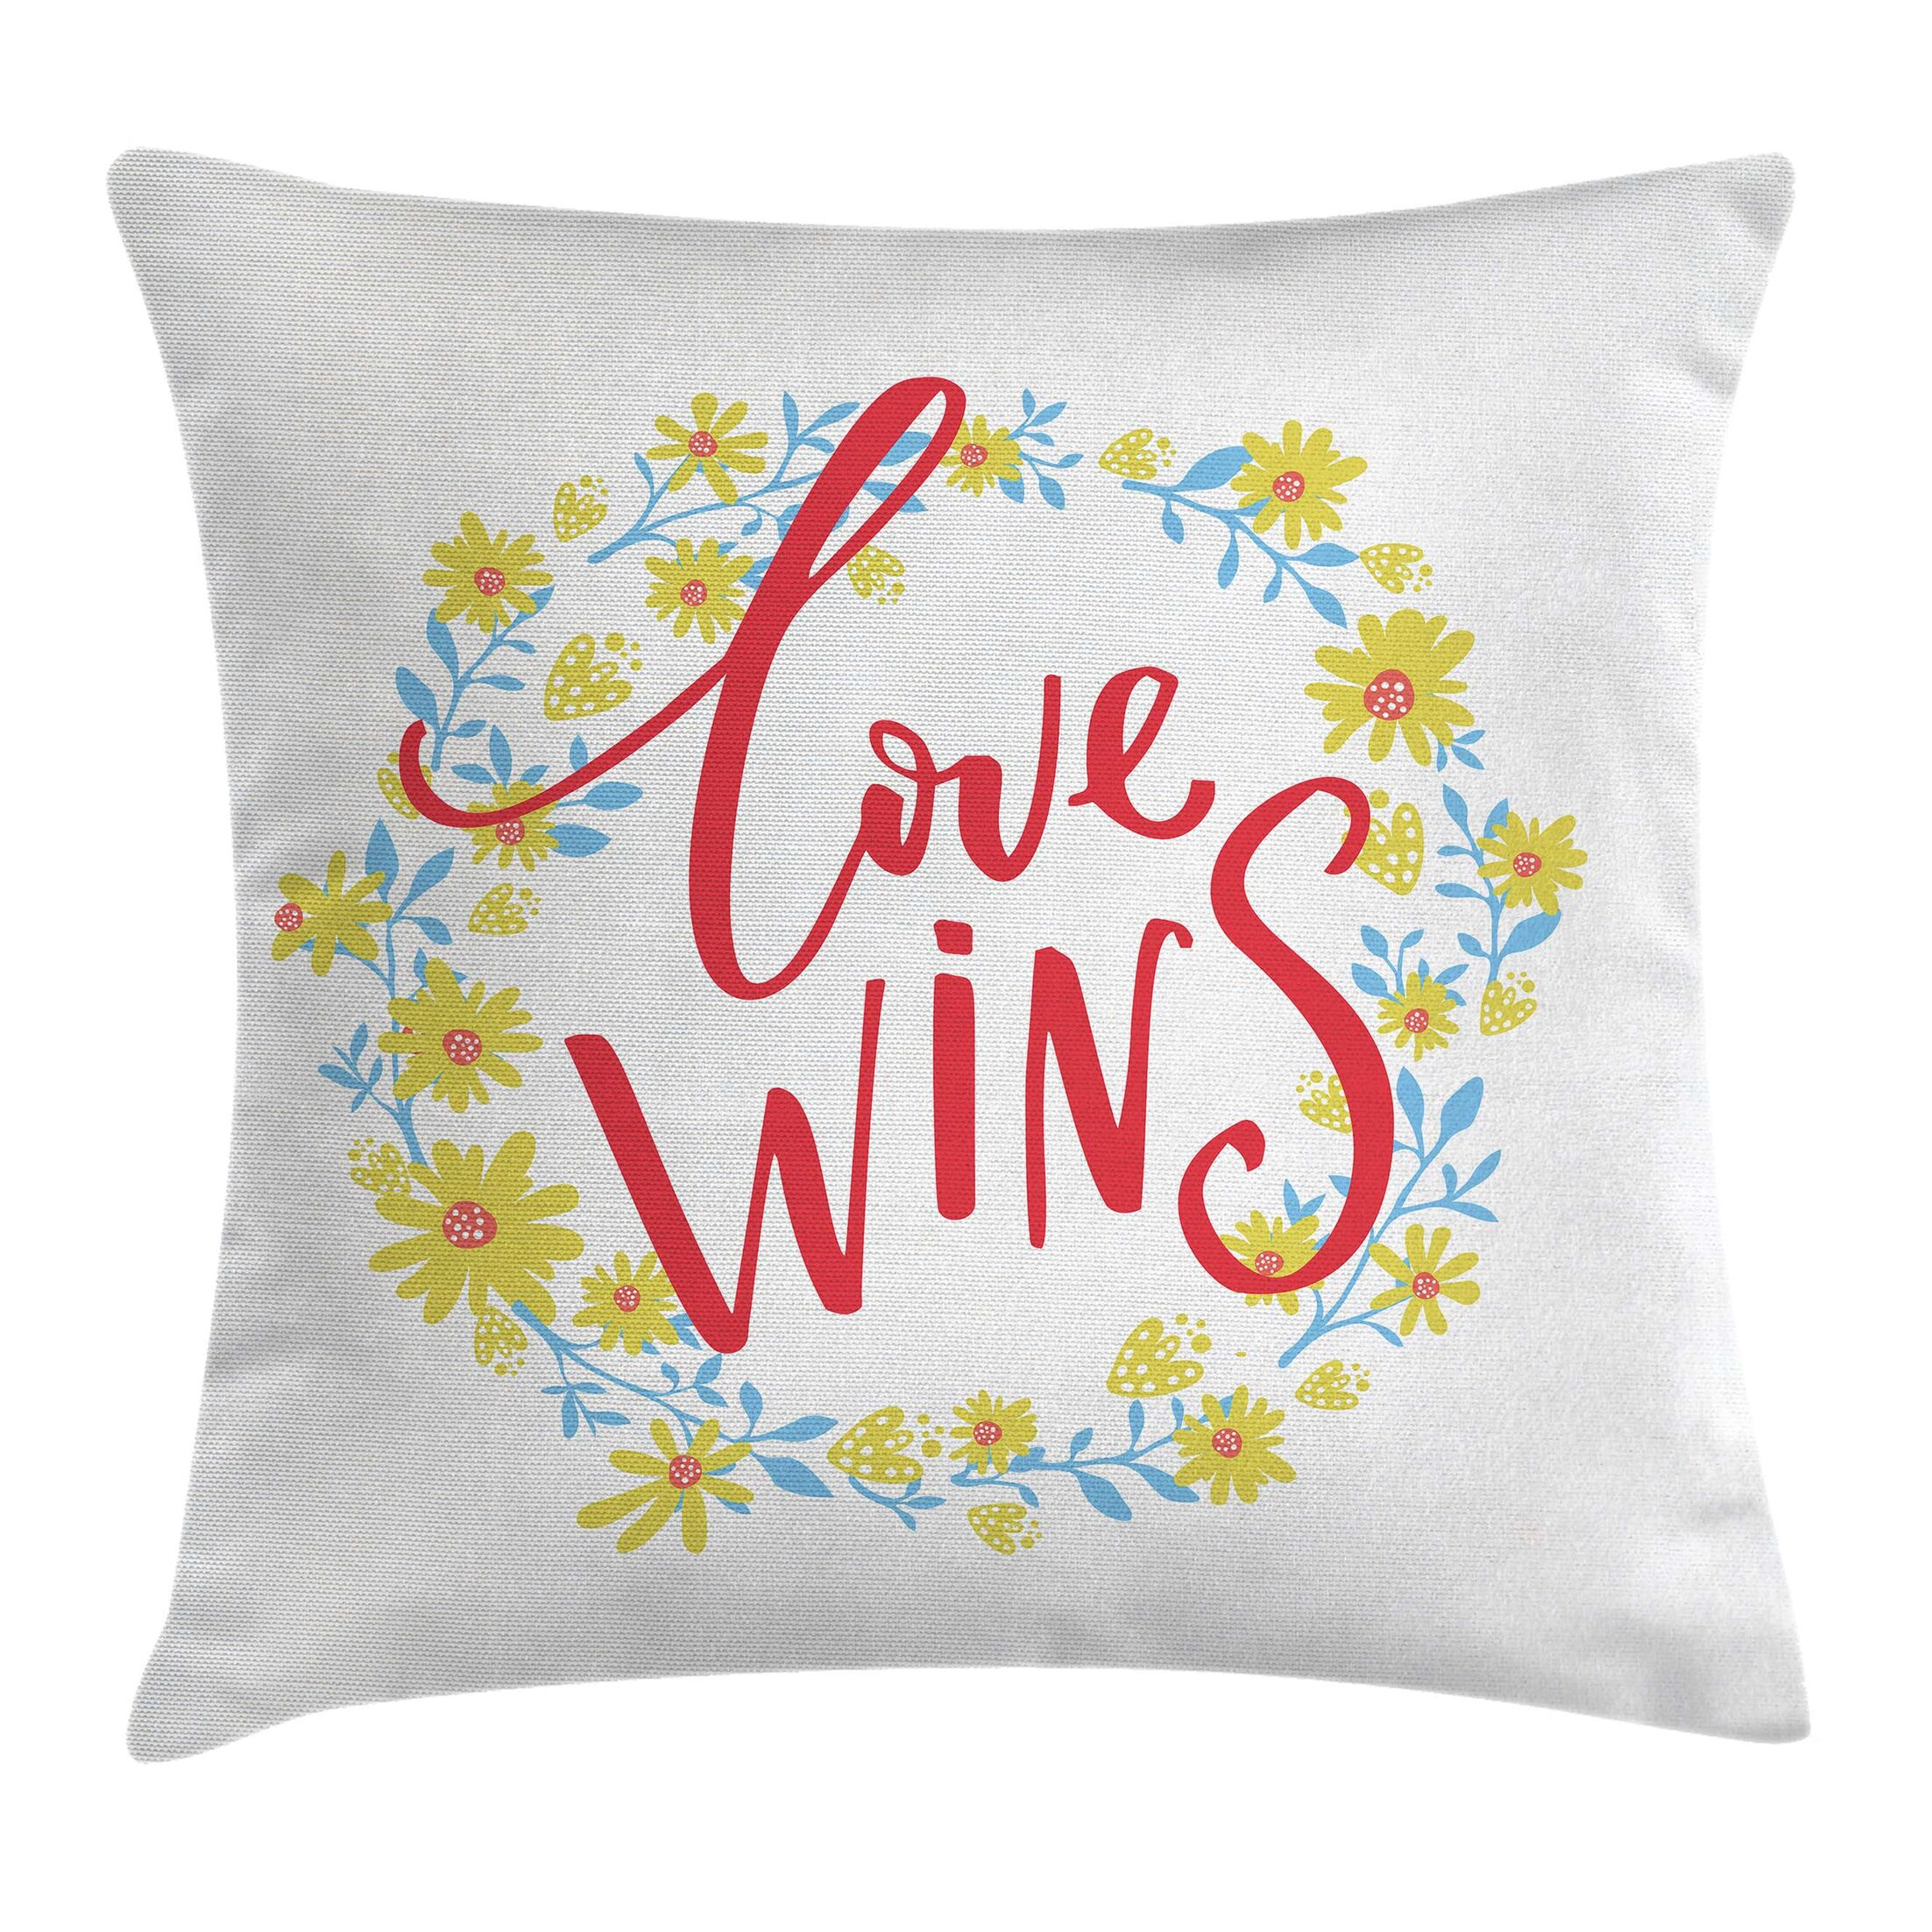 Quote Love Wins Floral Wreath Pillow Cover Size: 20